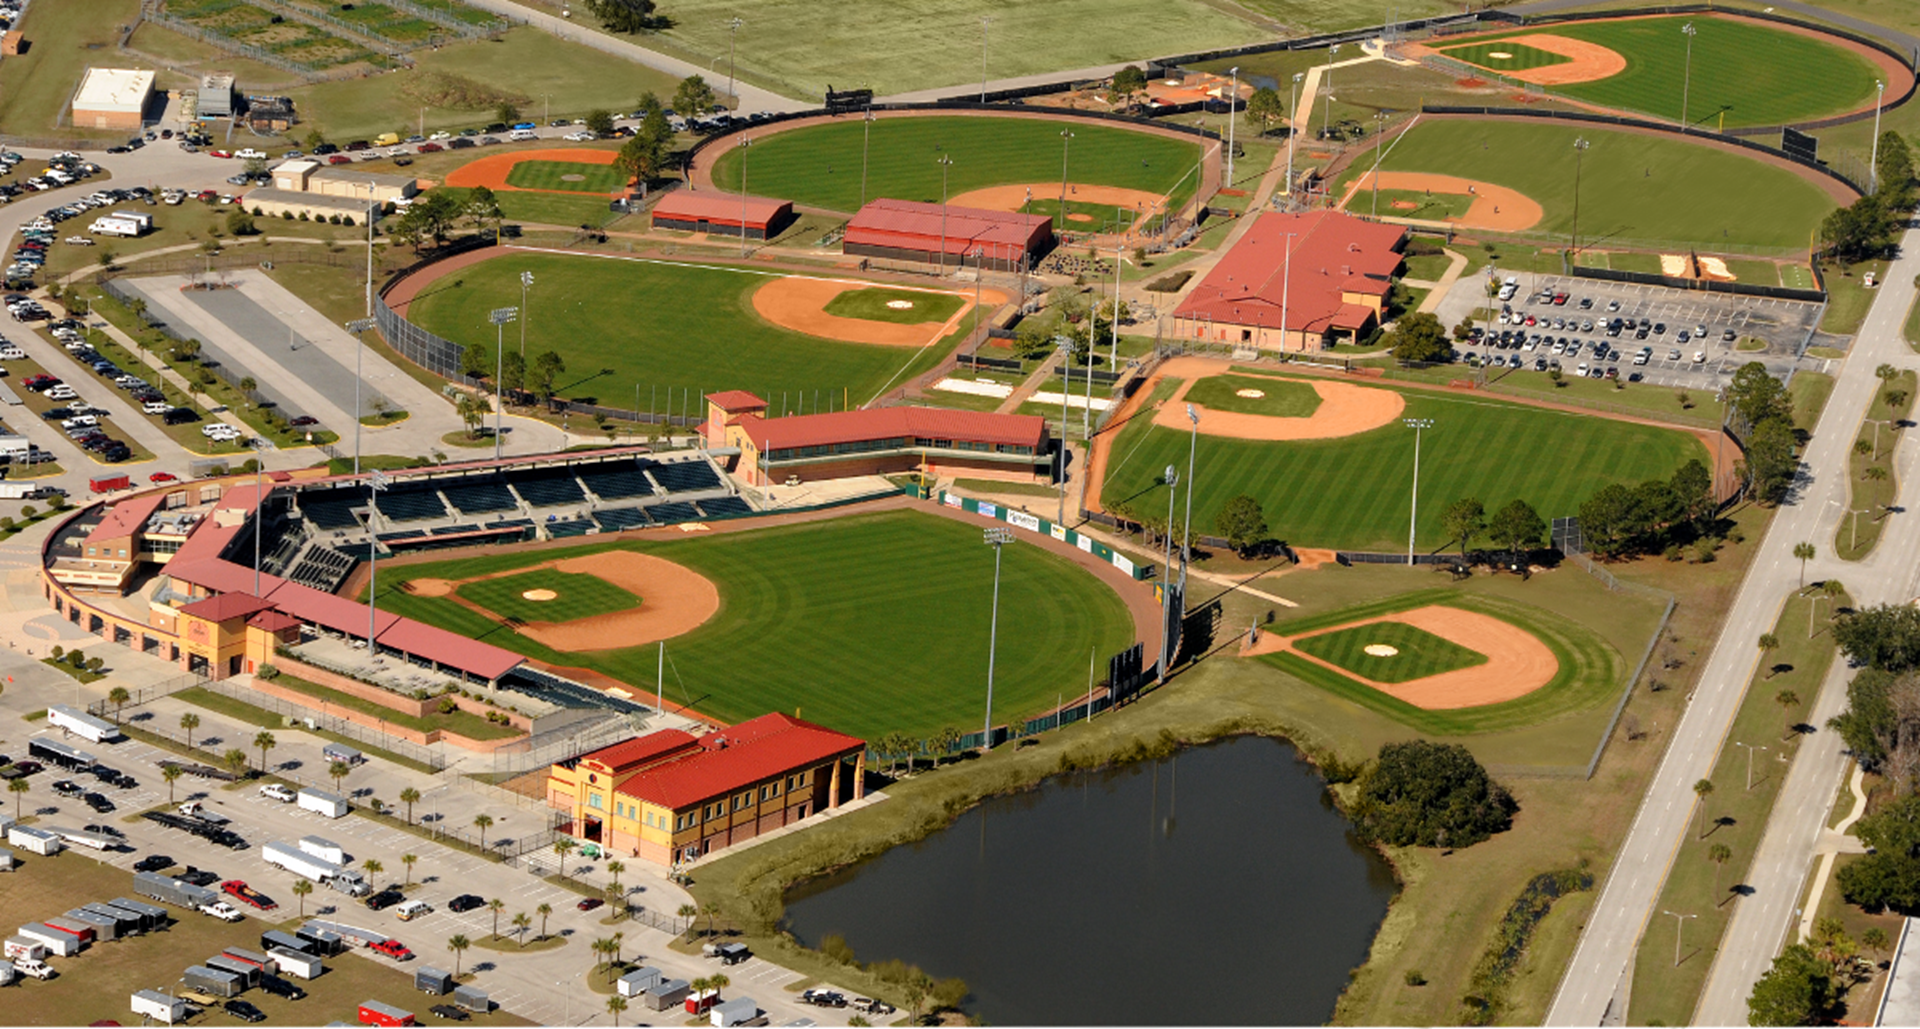 14 Top Baseball Facilities for 2016 - Sports Planning Guide